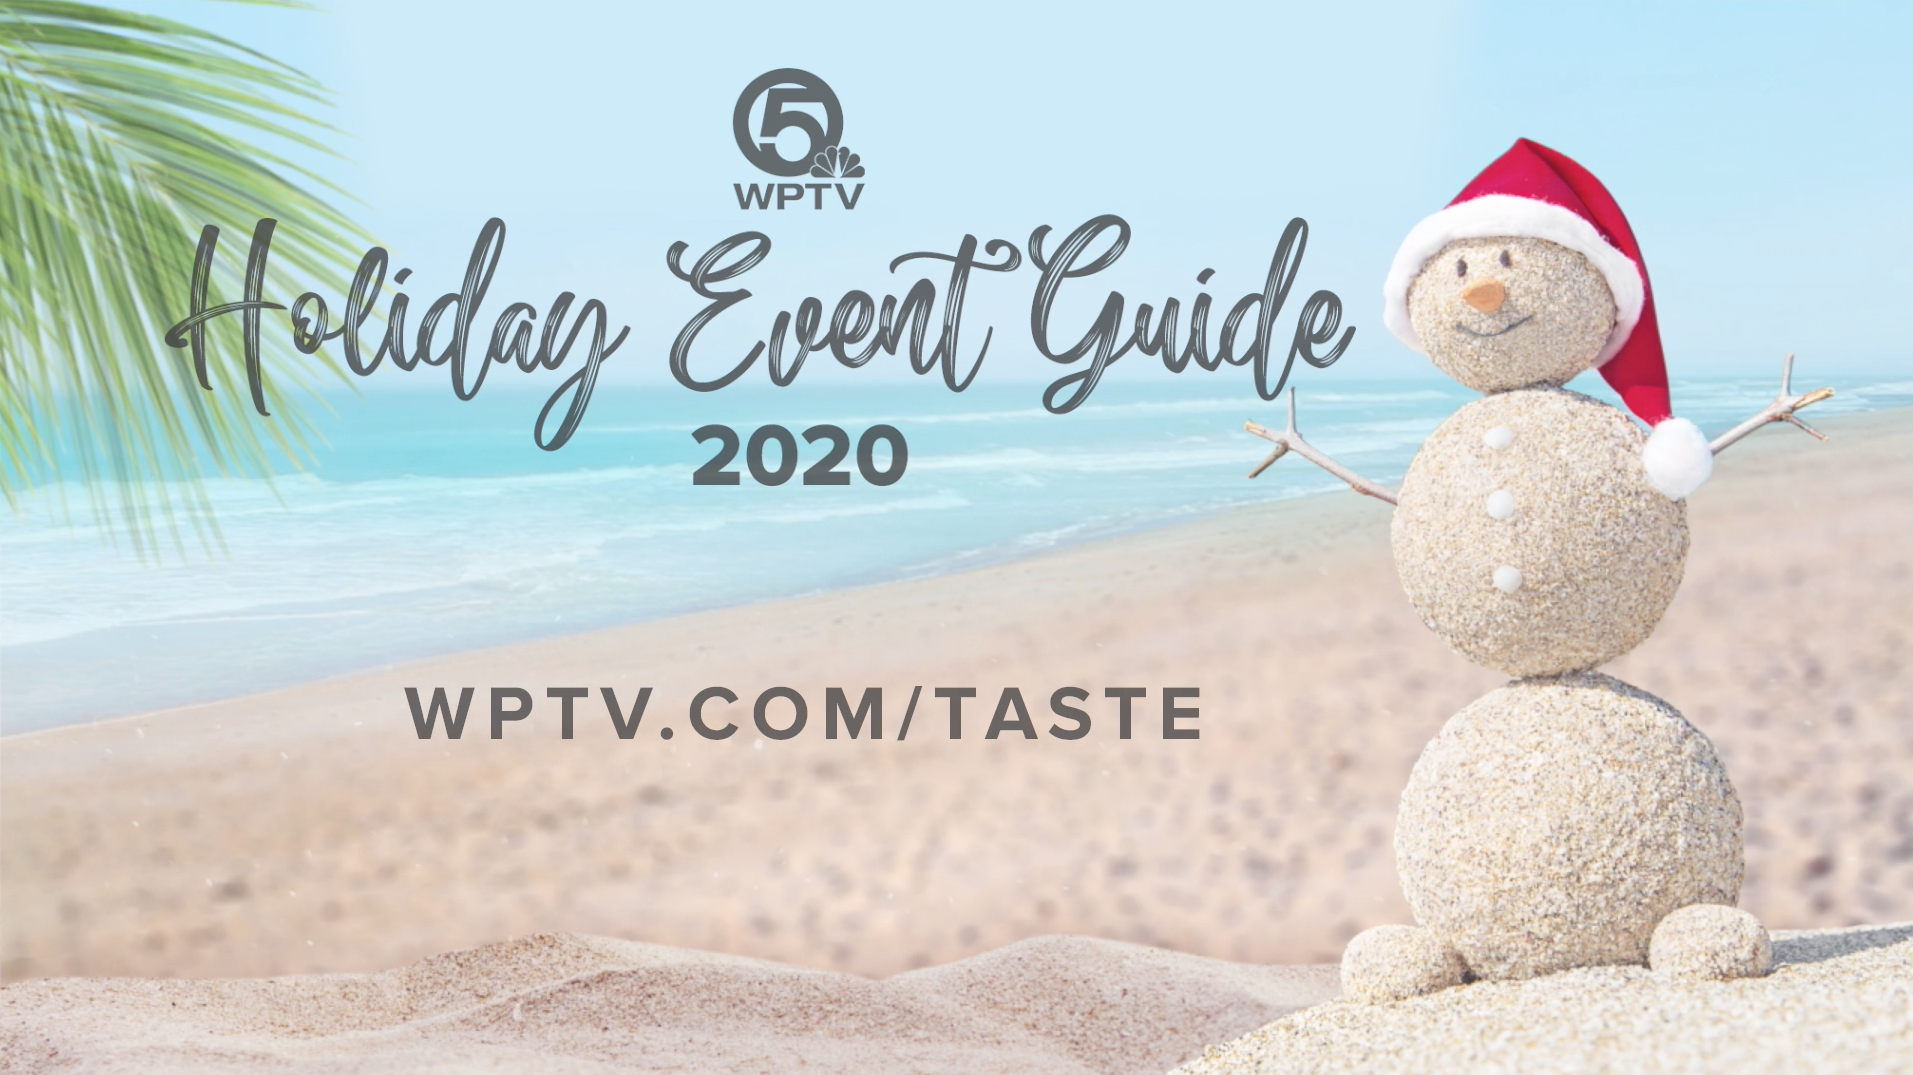 Holiday Event Guide 2020 for South Florida